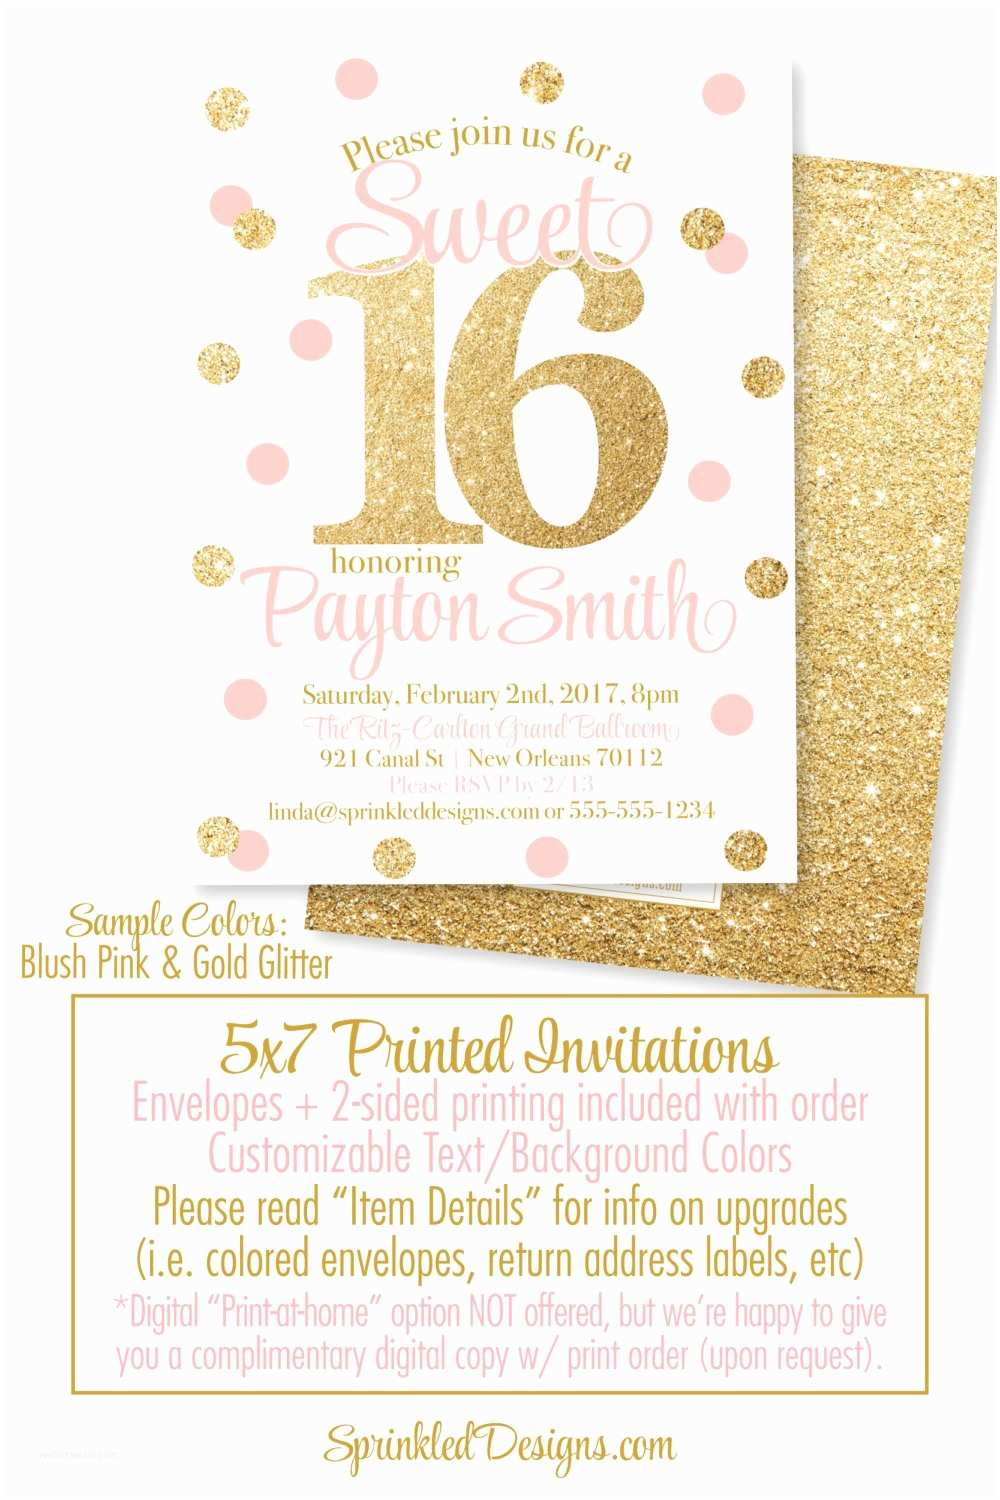 Sweet 16 Party Invitations Sweet 16 Invitations Pink and Gold Glitter Sweet Sixteen